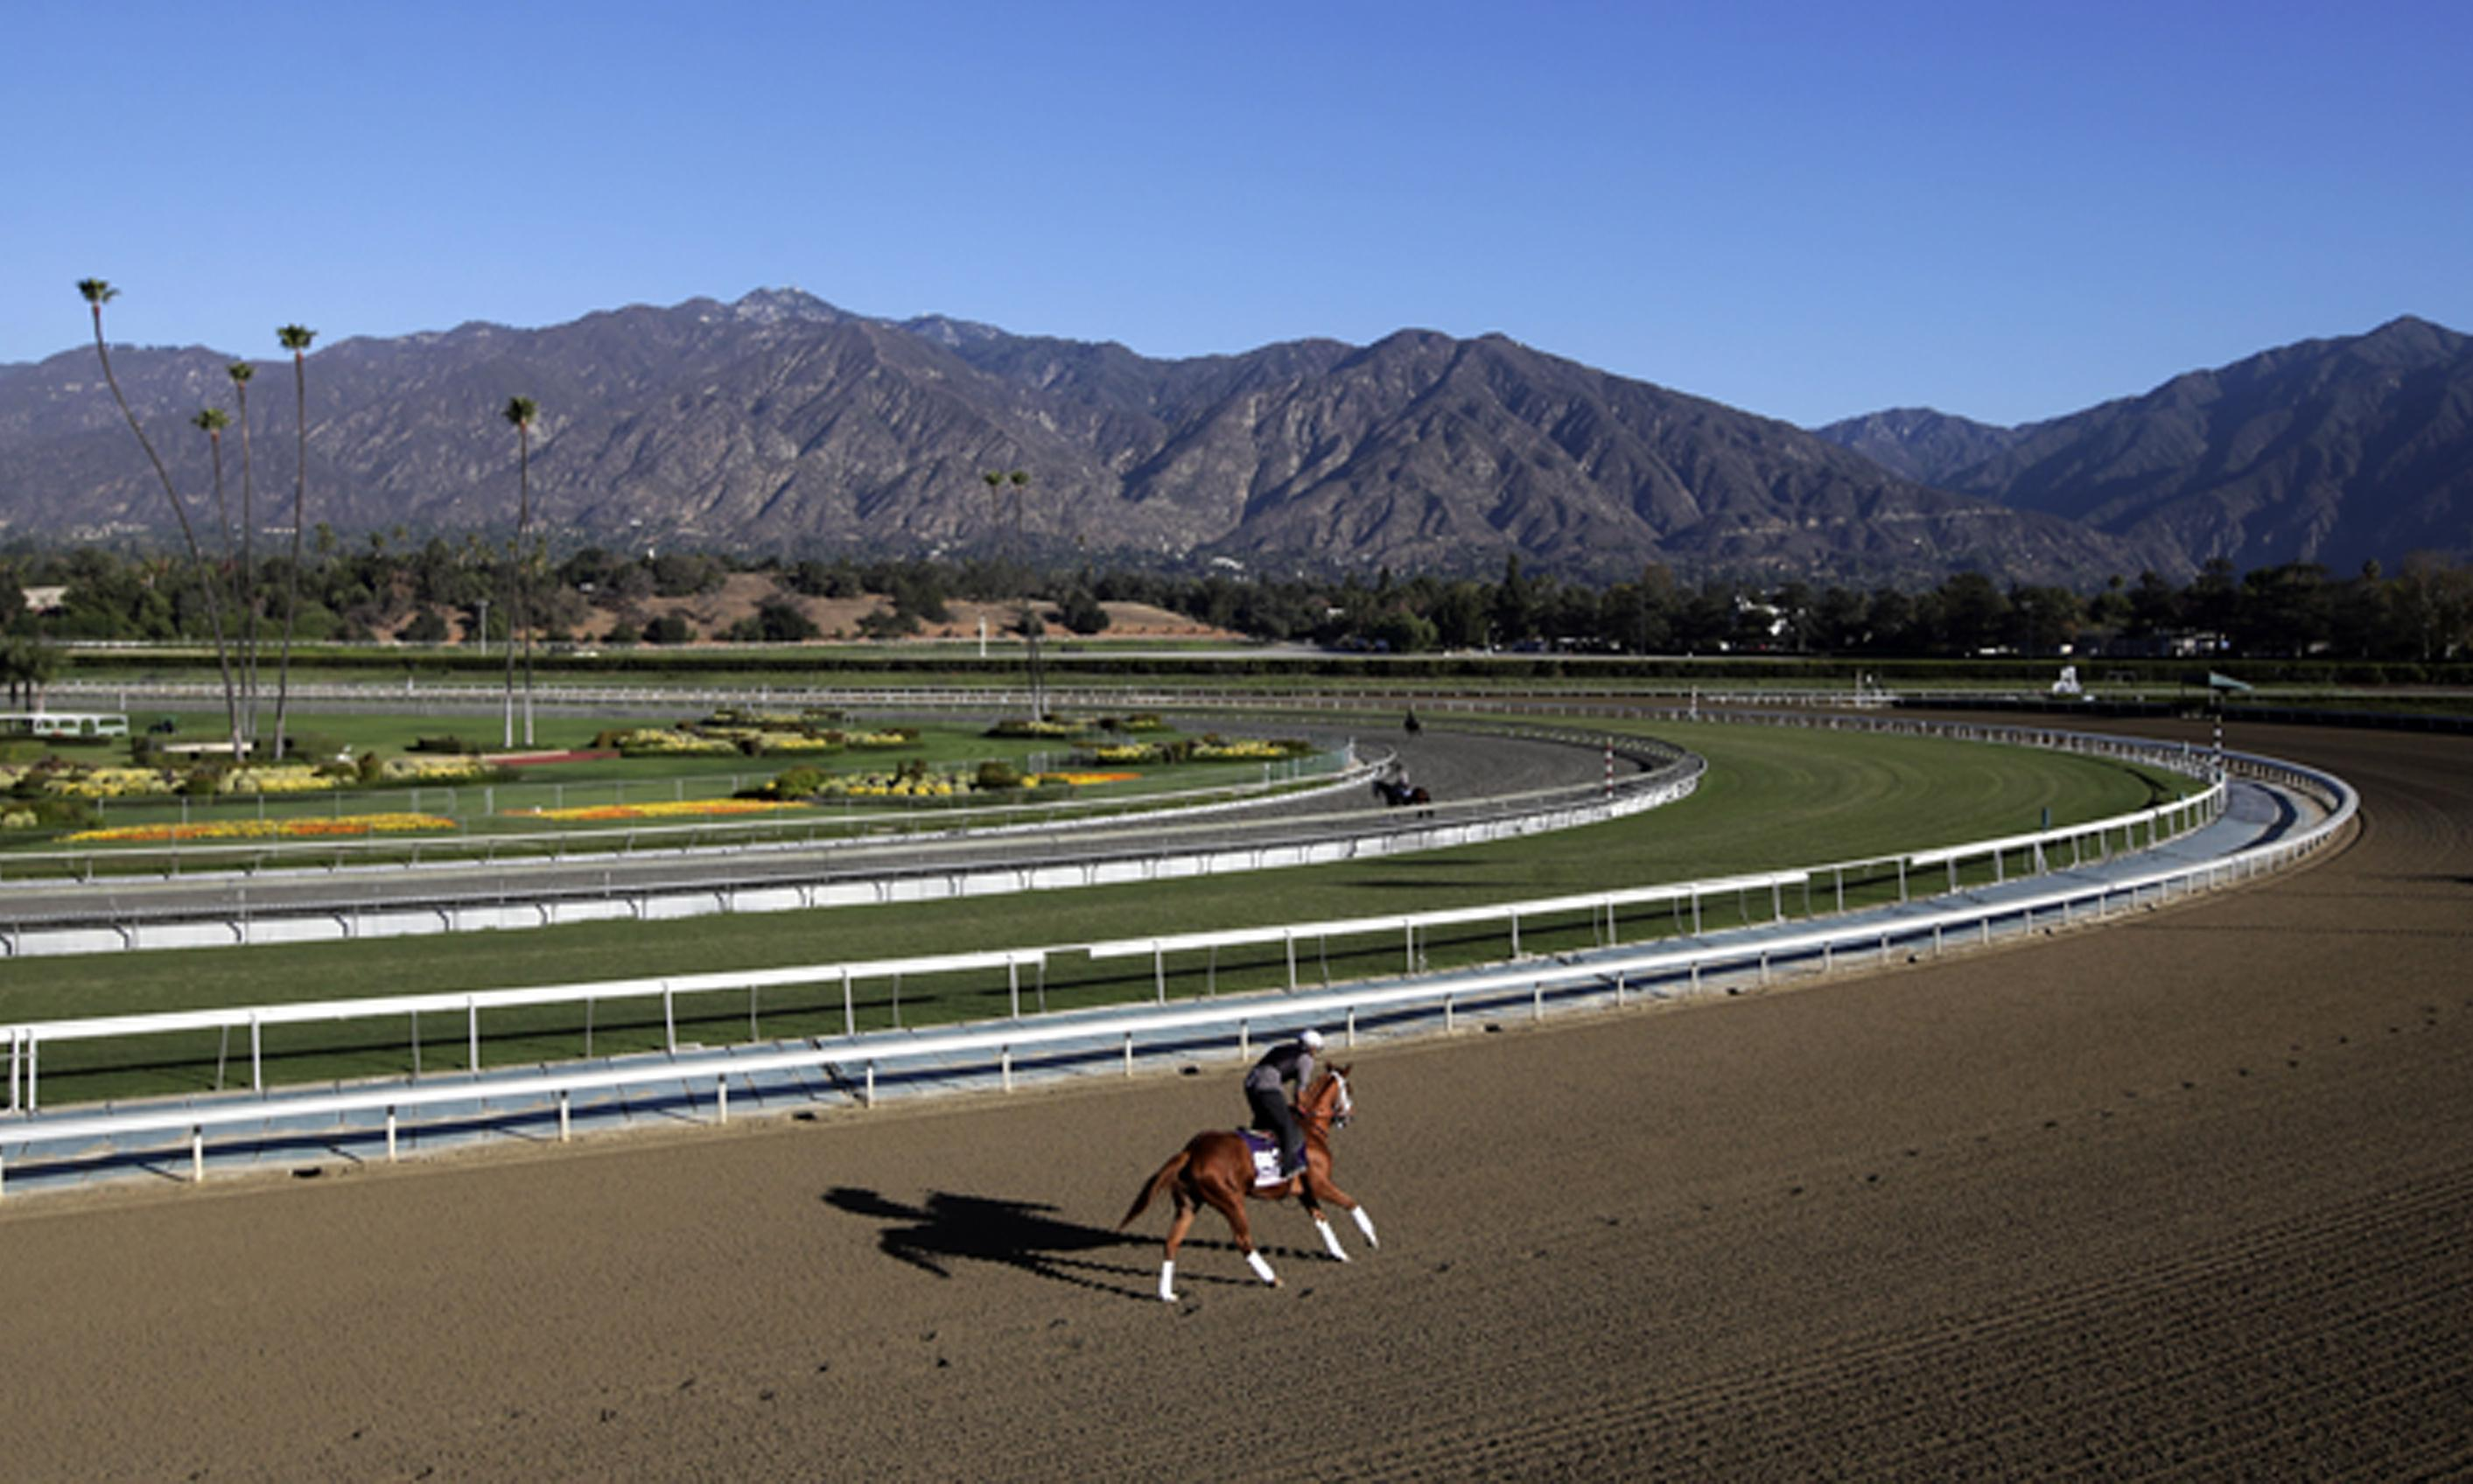 Third horse dies in nine days as fatalities mount once again at Santa Anita